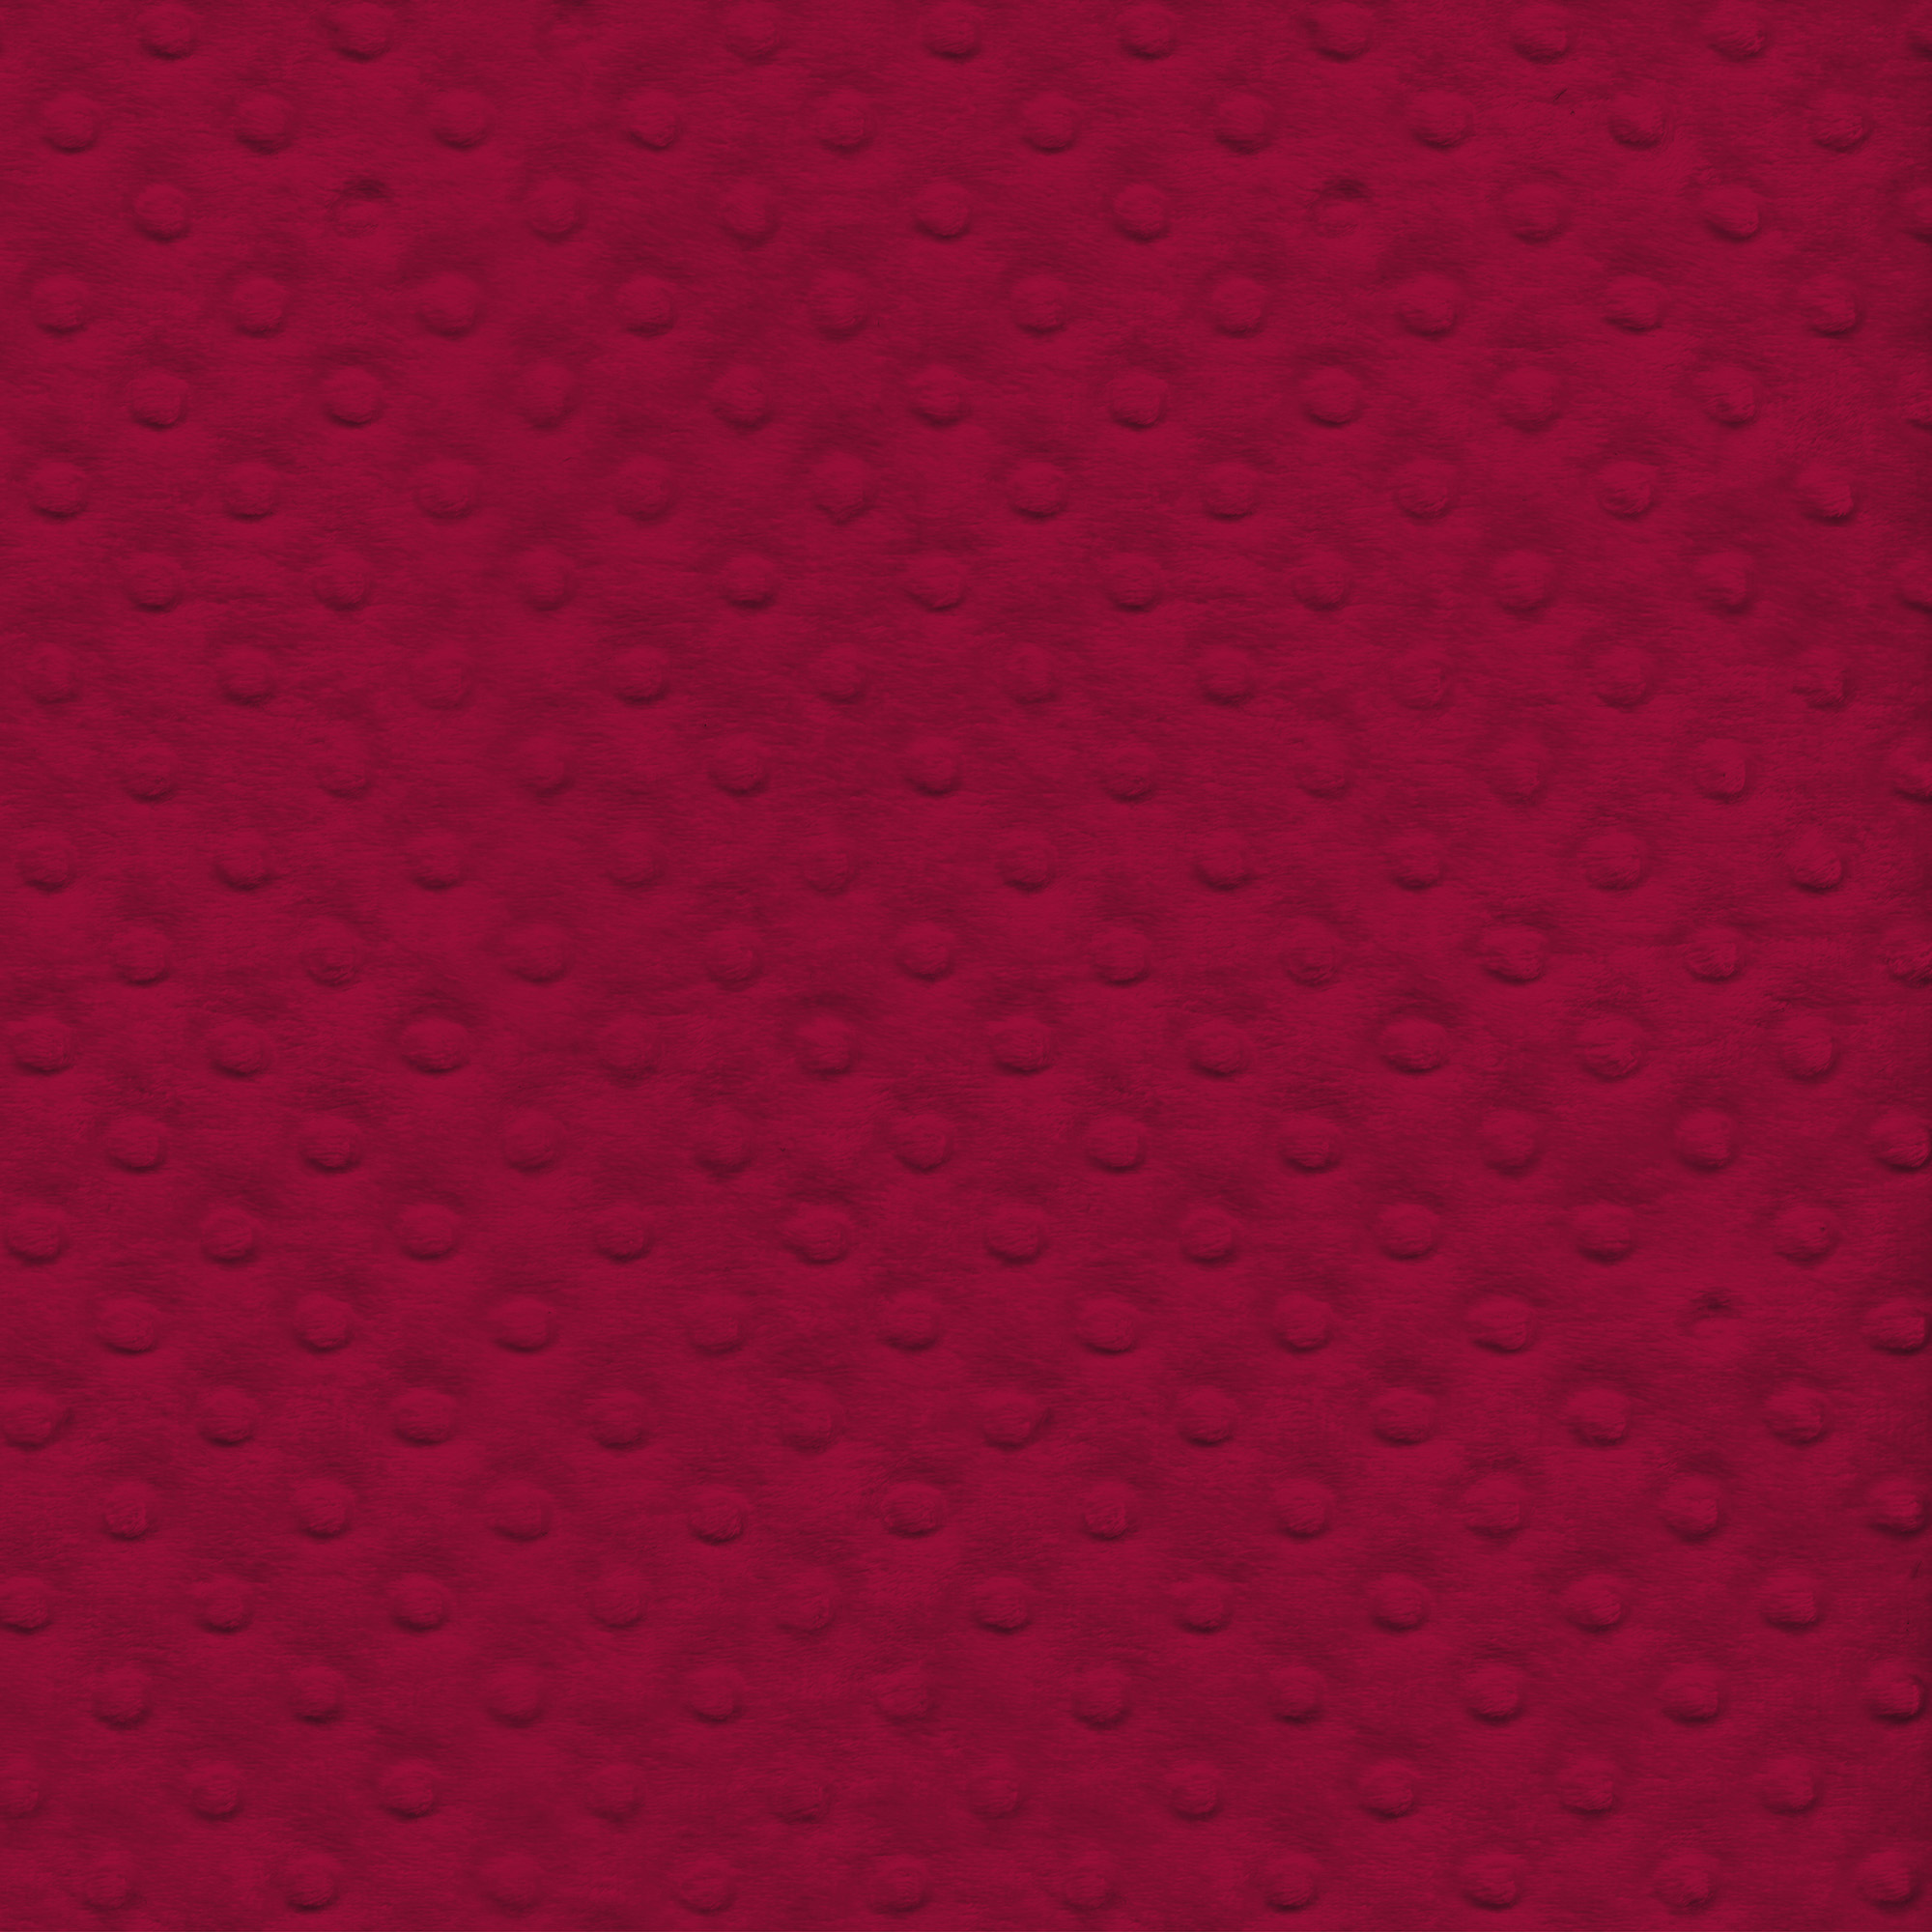 "David Textiles Plush Dot Polyester Fleece, 60"" Fabric By The Yard"